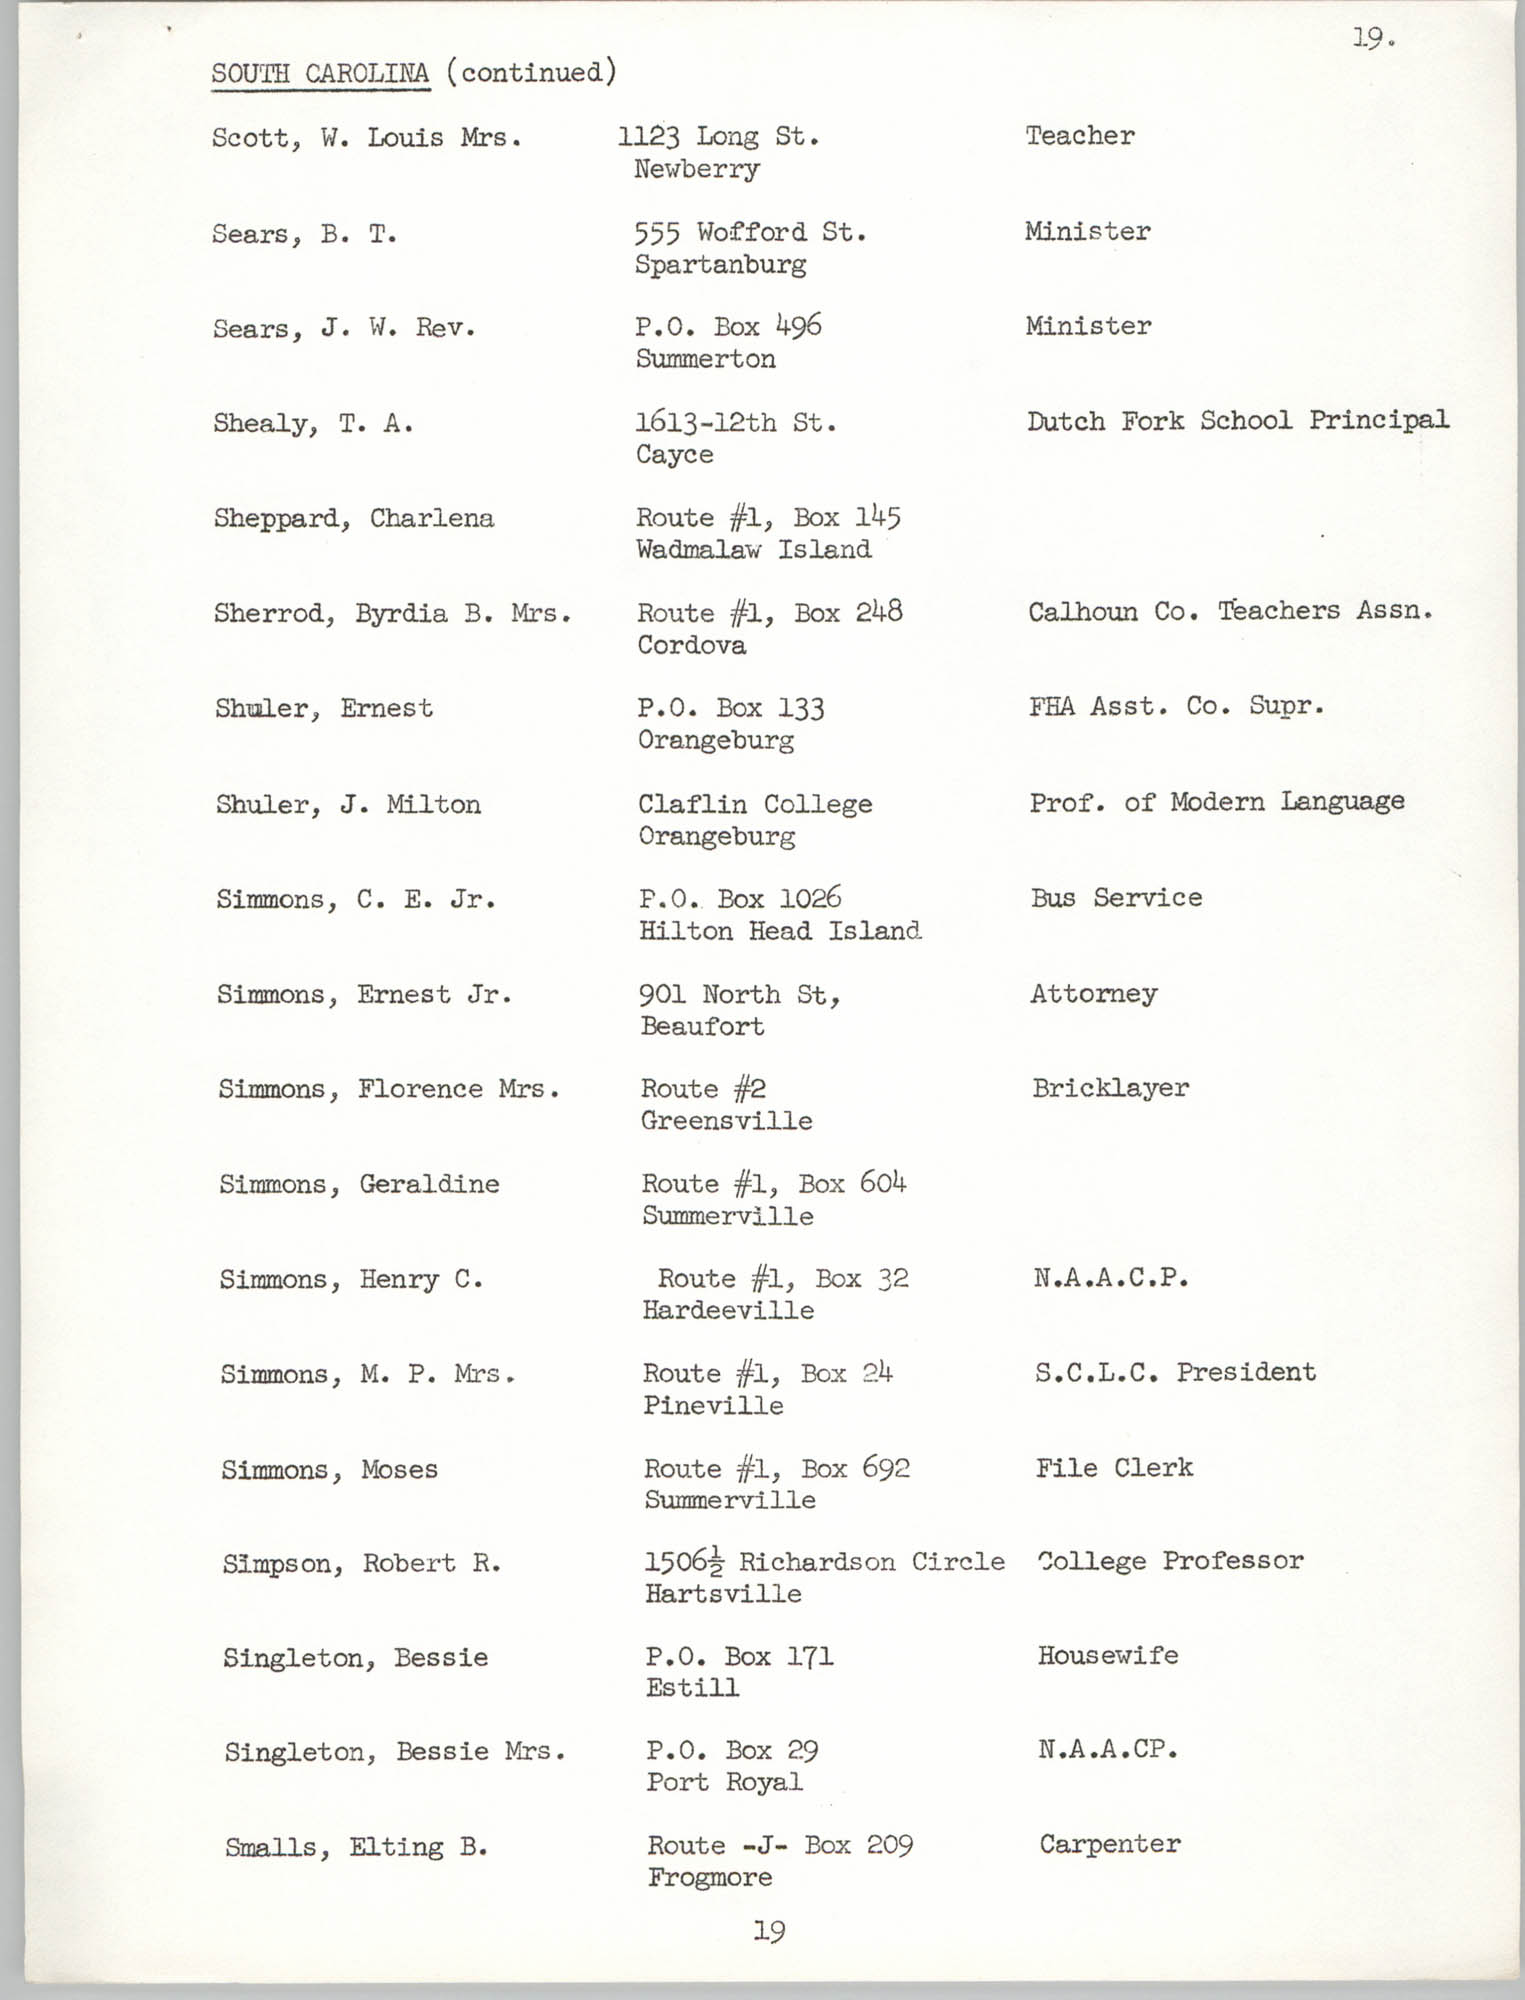 Registration, U.S. Commission on Civil Rights, Statewide Education Desegregation Conference, Page 19